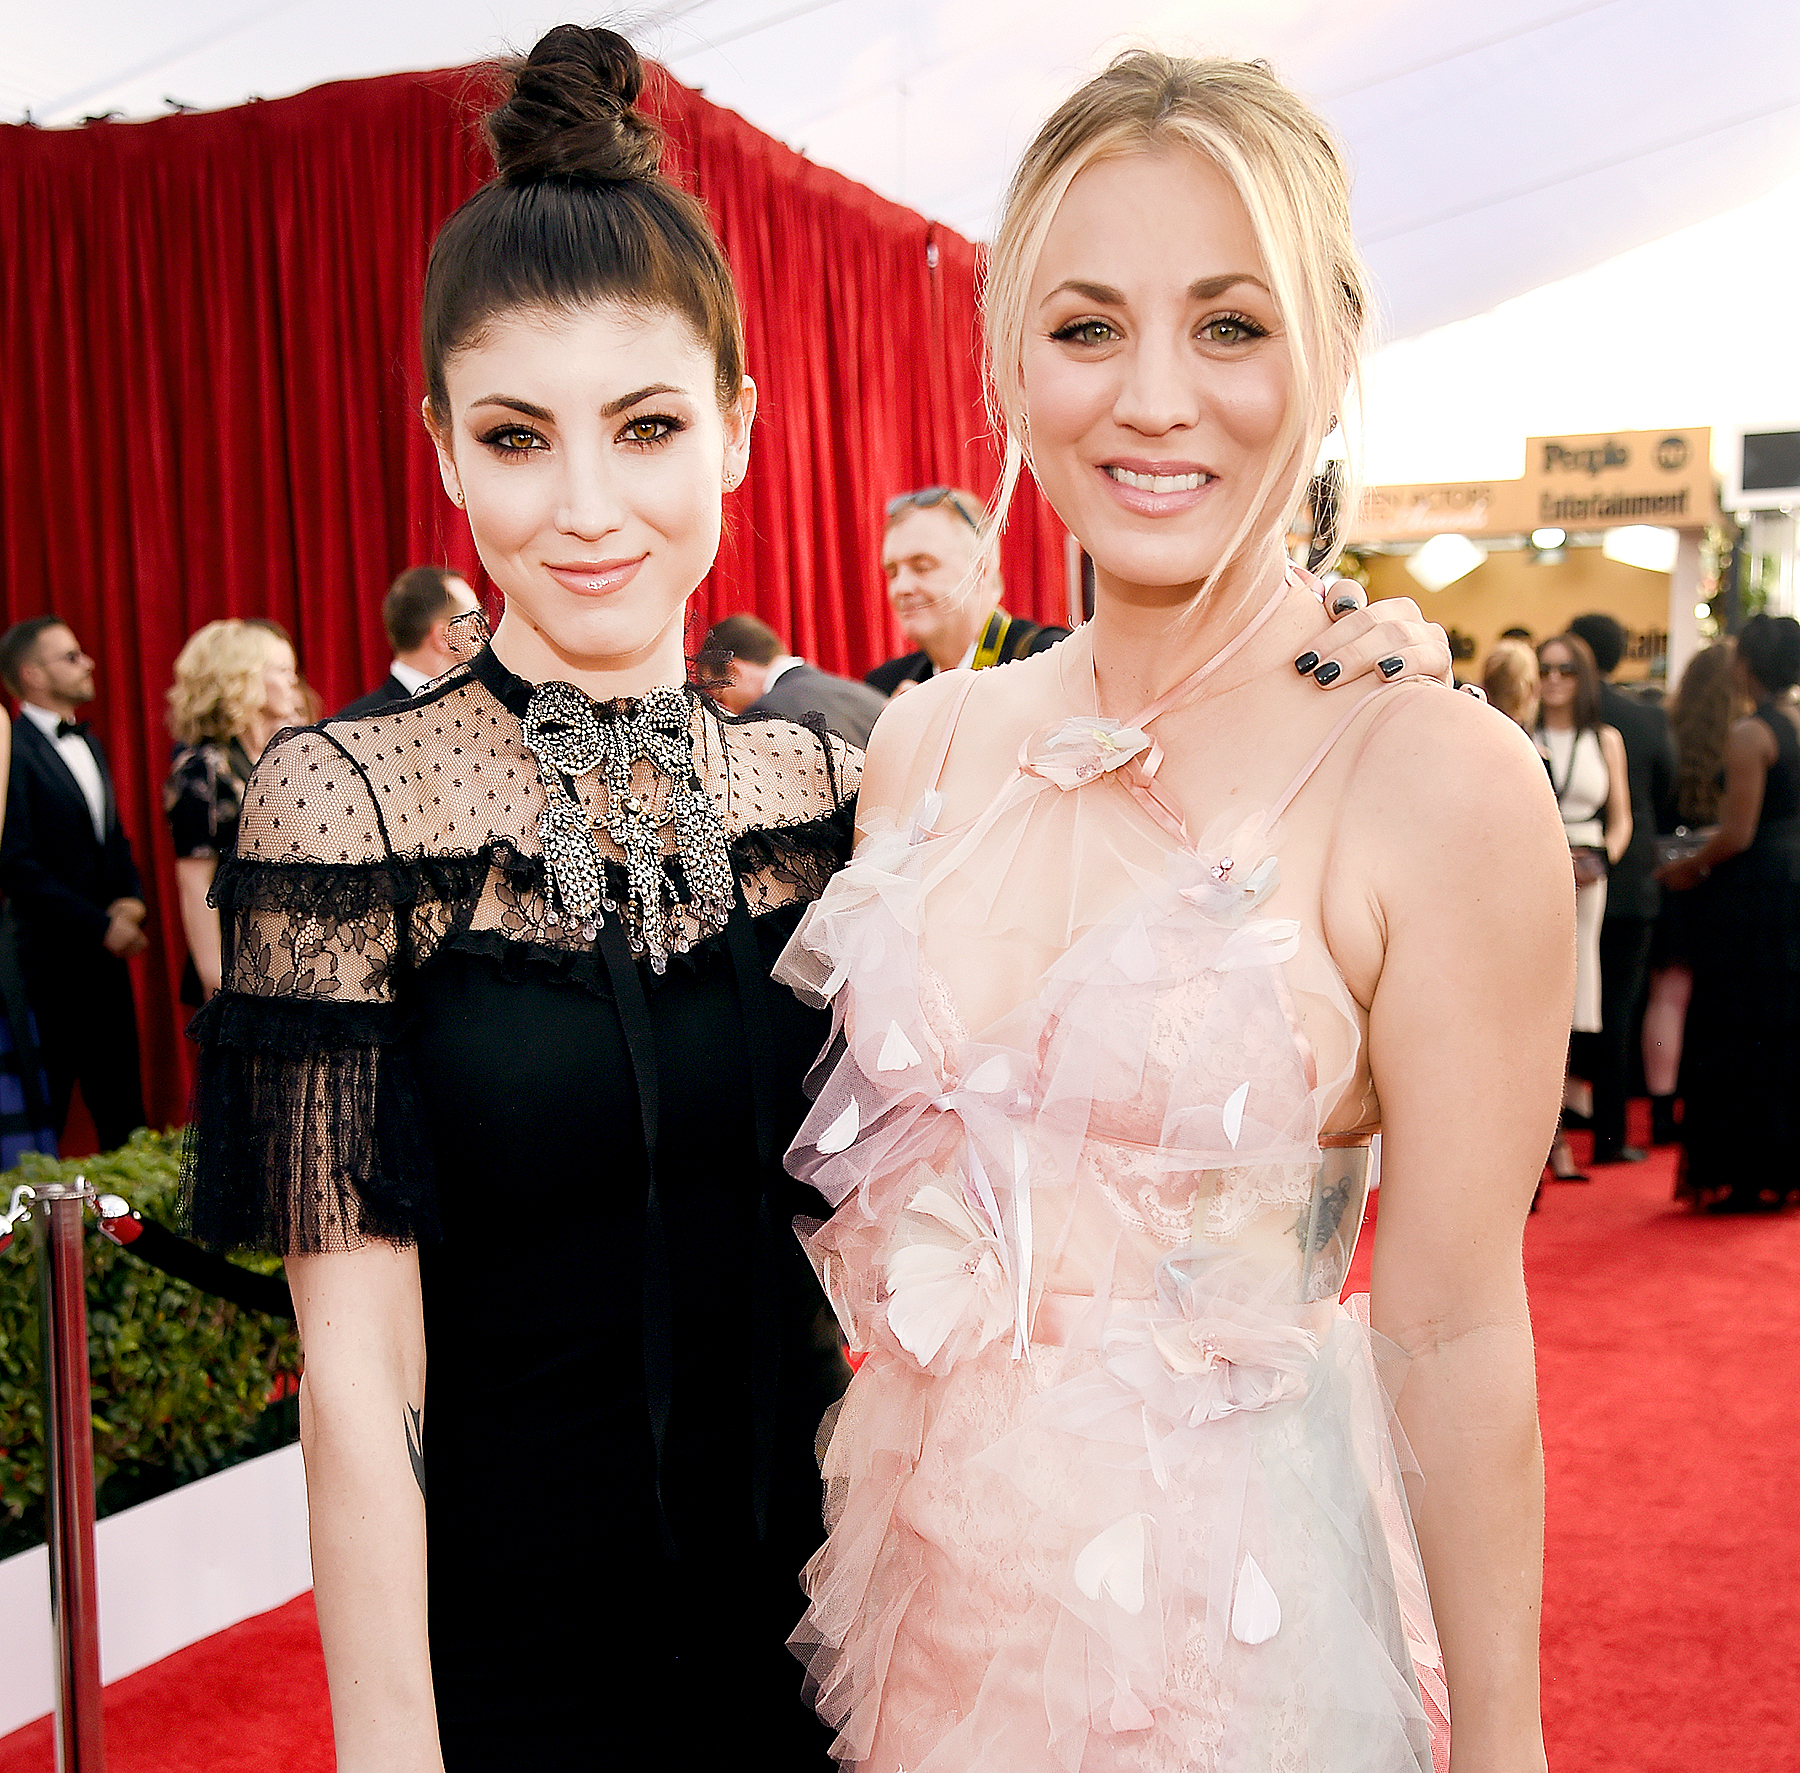 Briana and Kaley Cuoco attend the 23rd Annual Screen Actors Guild Awards.